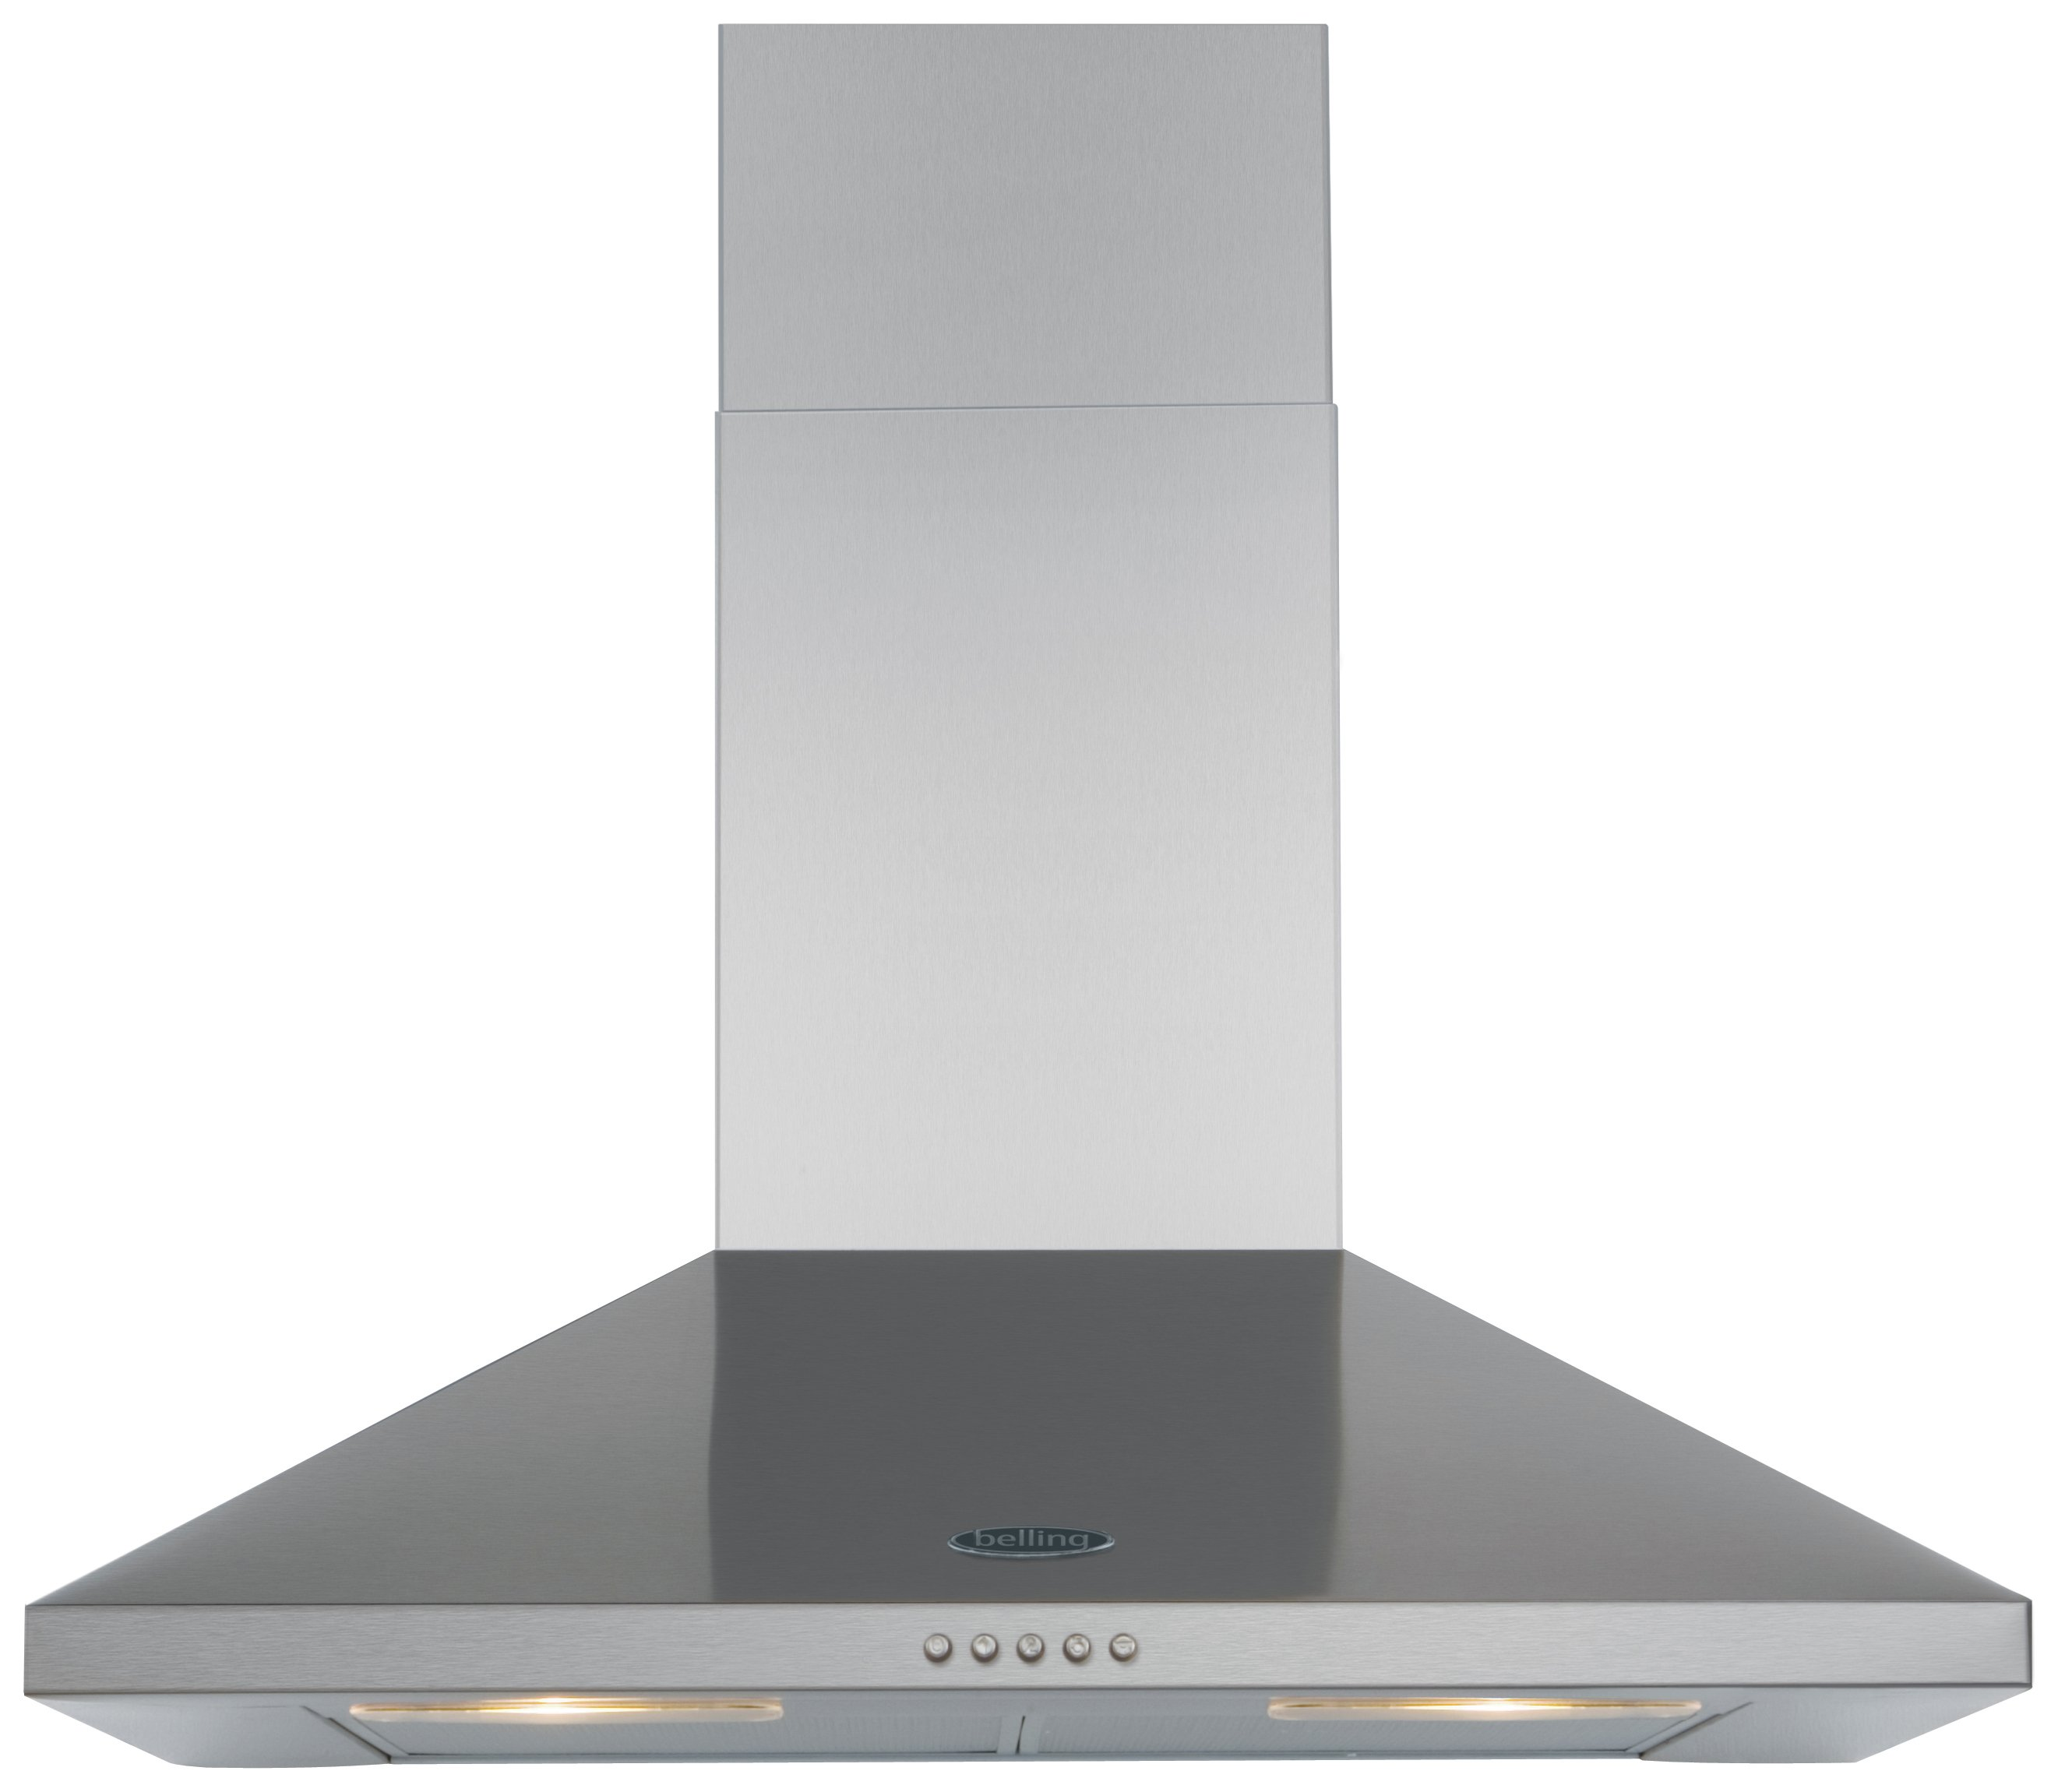 Image of Belling 70CHIM 70cm Cooker Hood - Stainless Steel